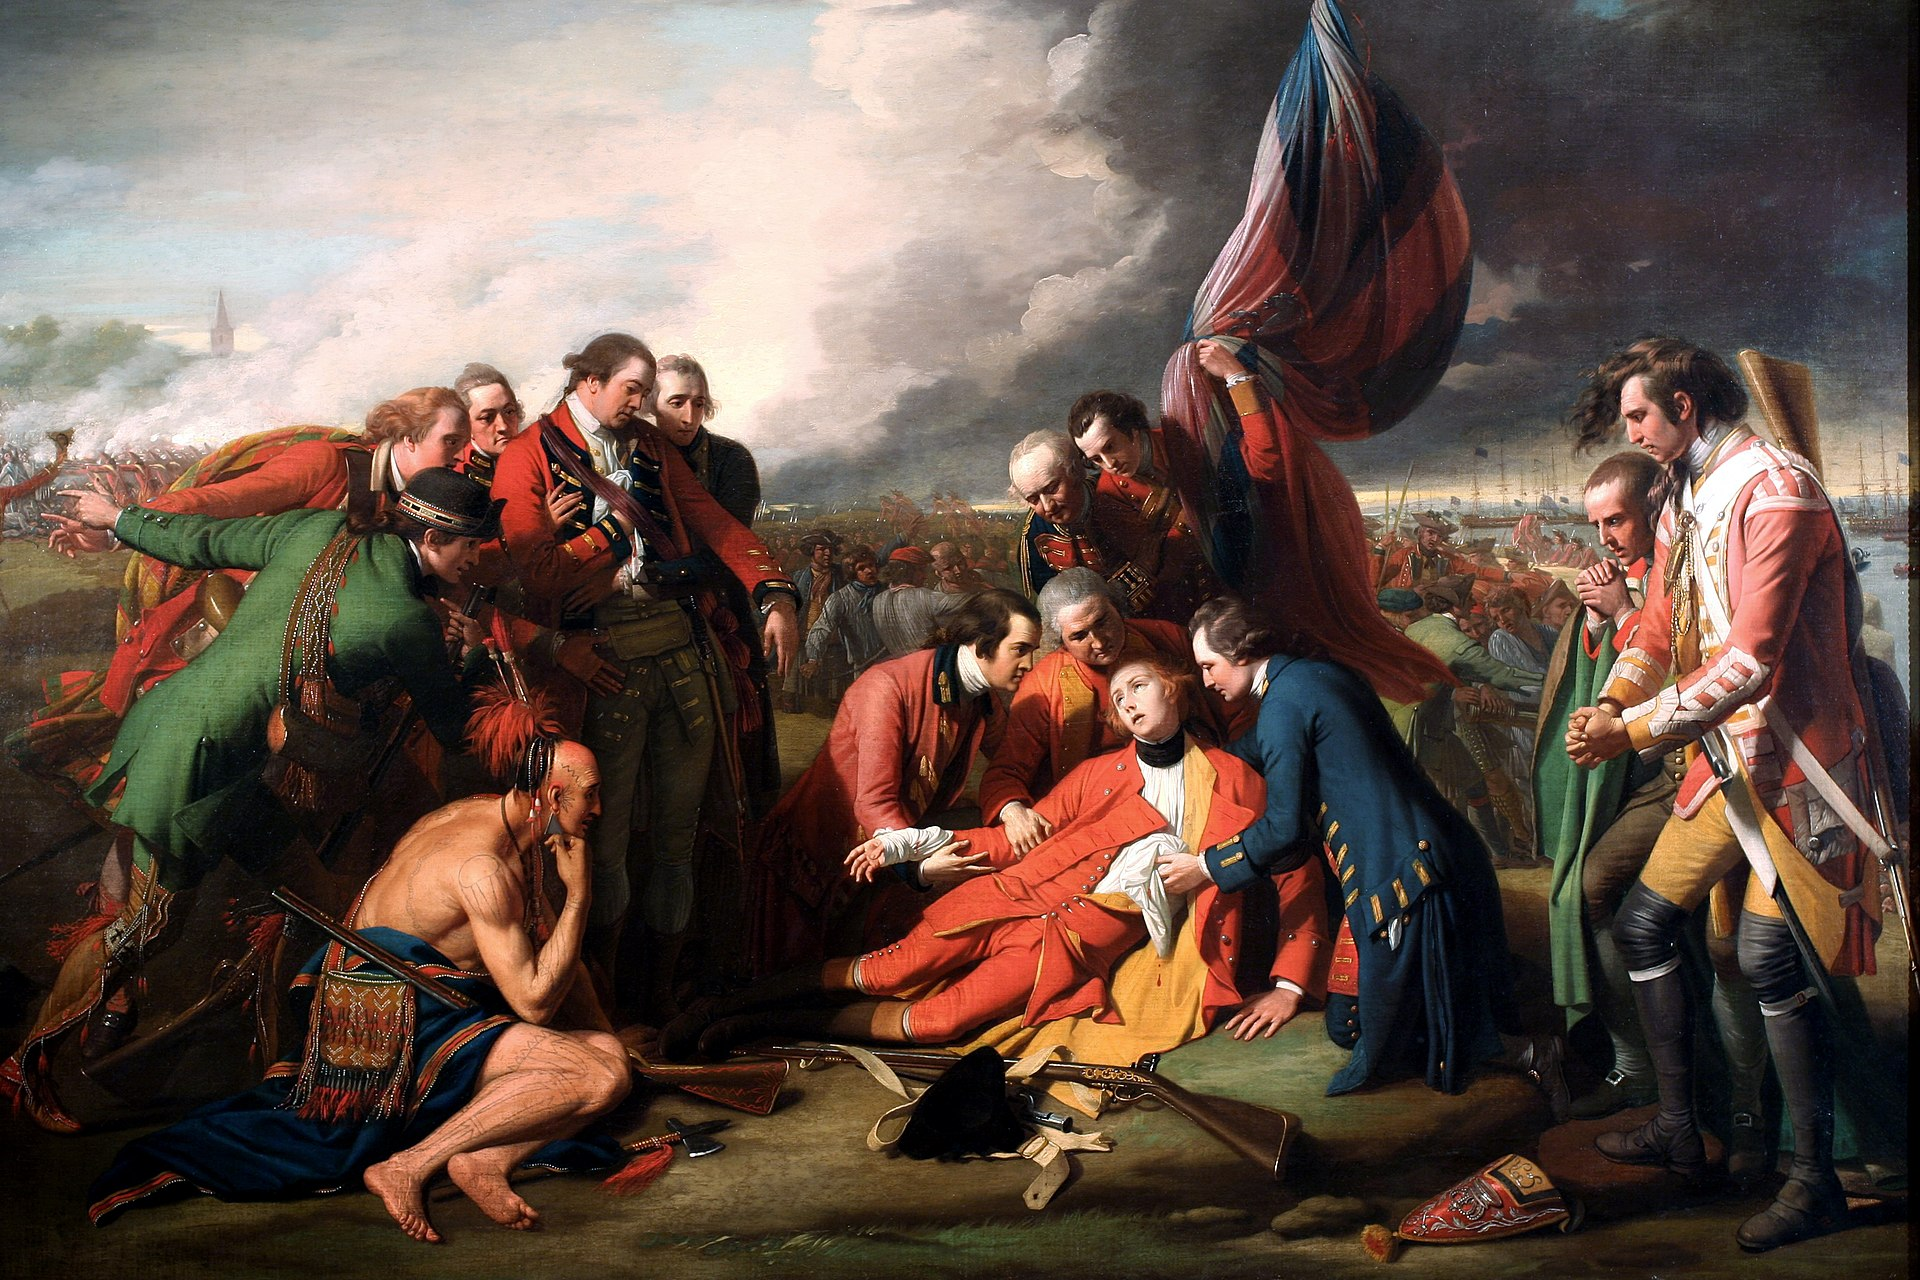 The Death of General Wolfe by Benjamin West (via Wikimedia)